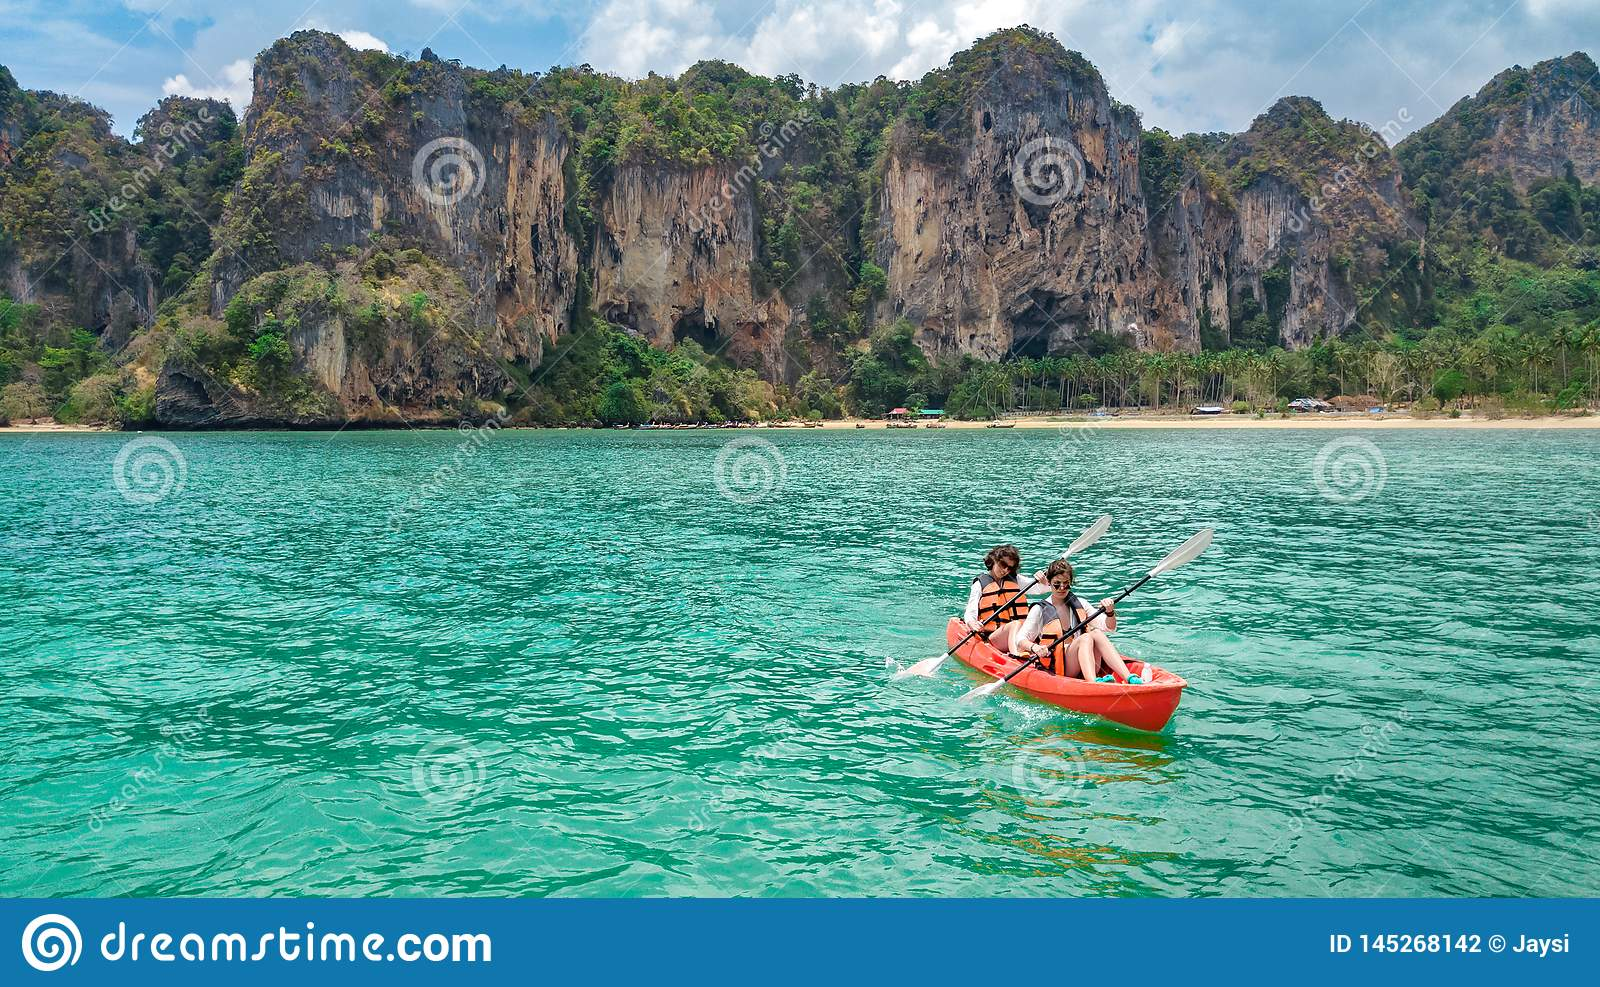 Family kayaking, mother and daughter paddling in kayak on tropical sea canoe tour near islands, having fun, vacation in Thailand